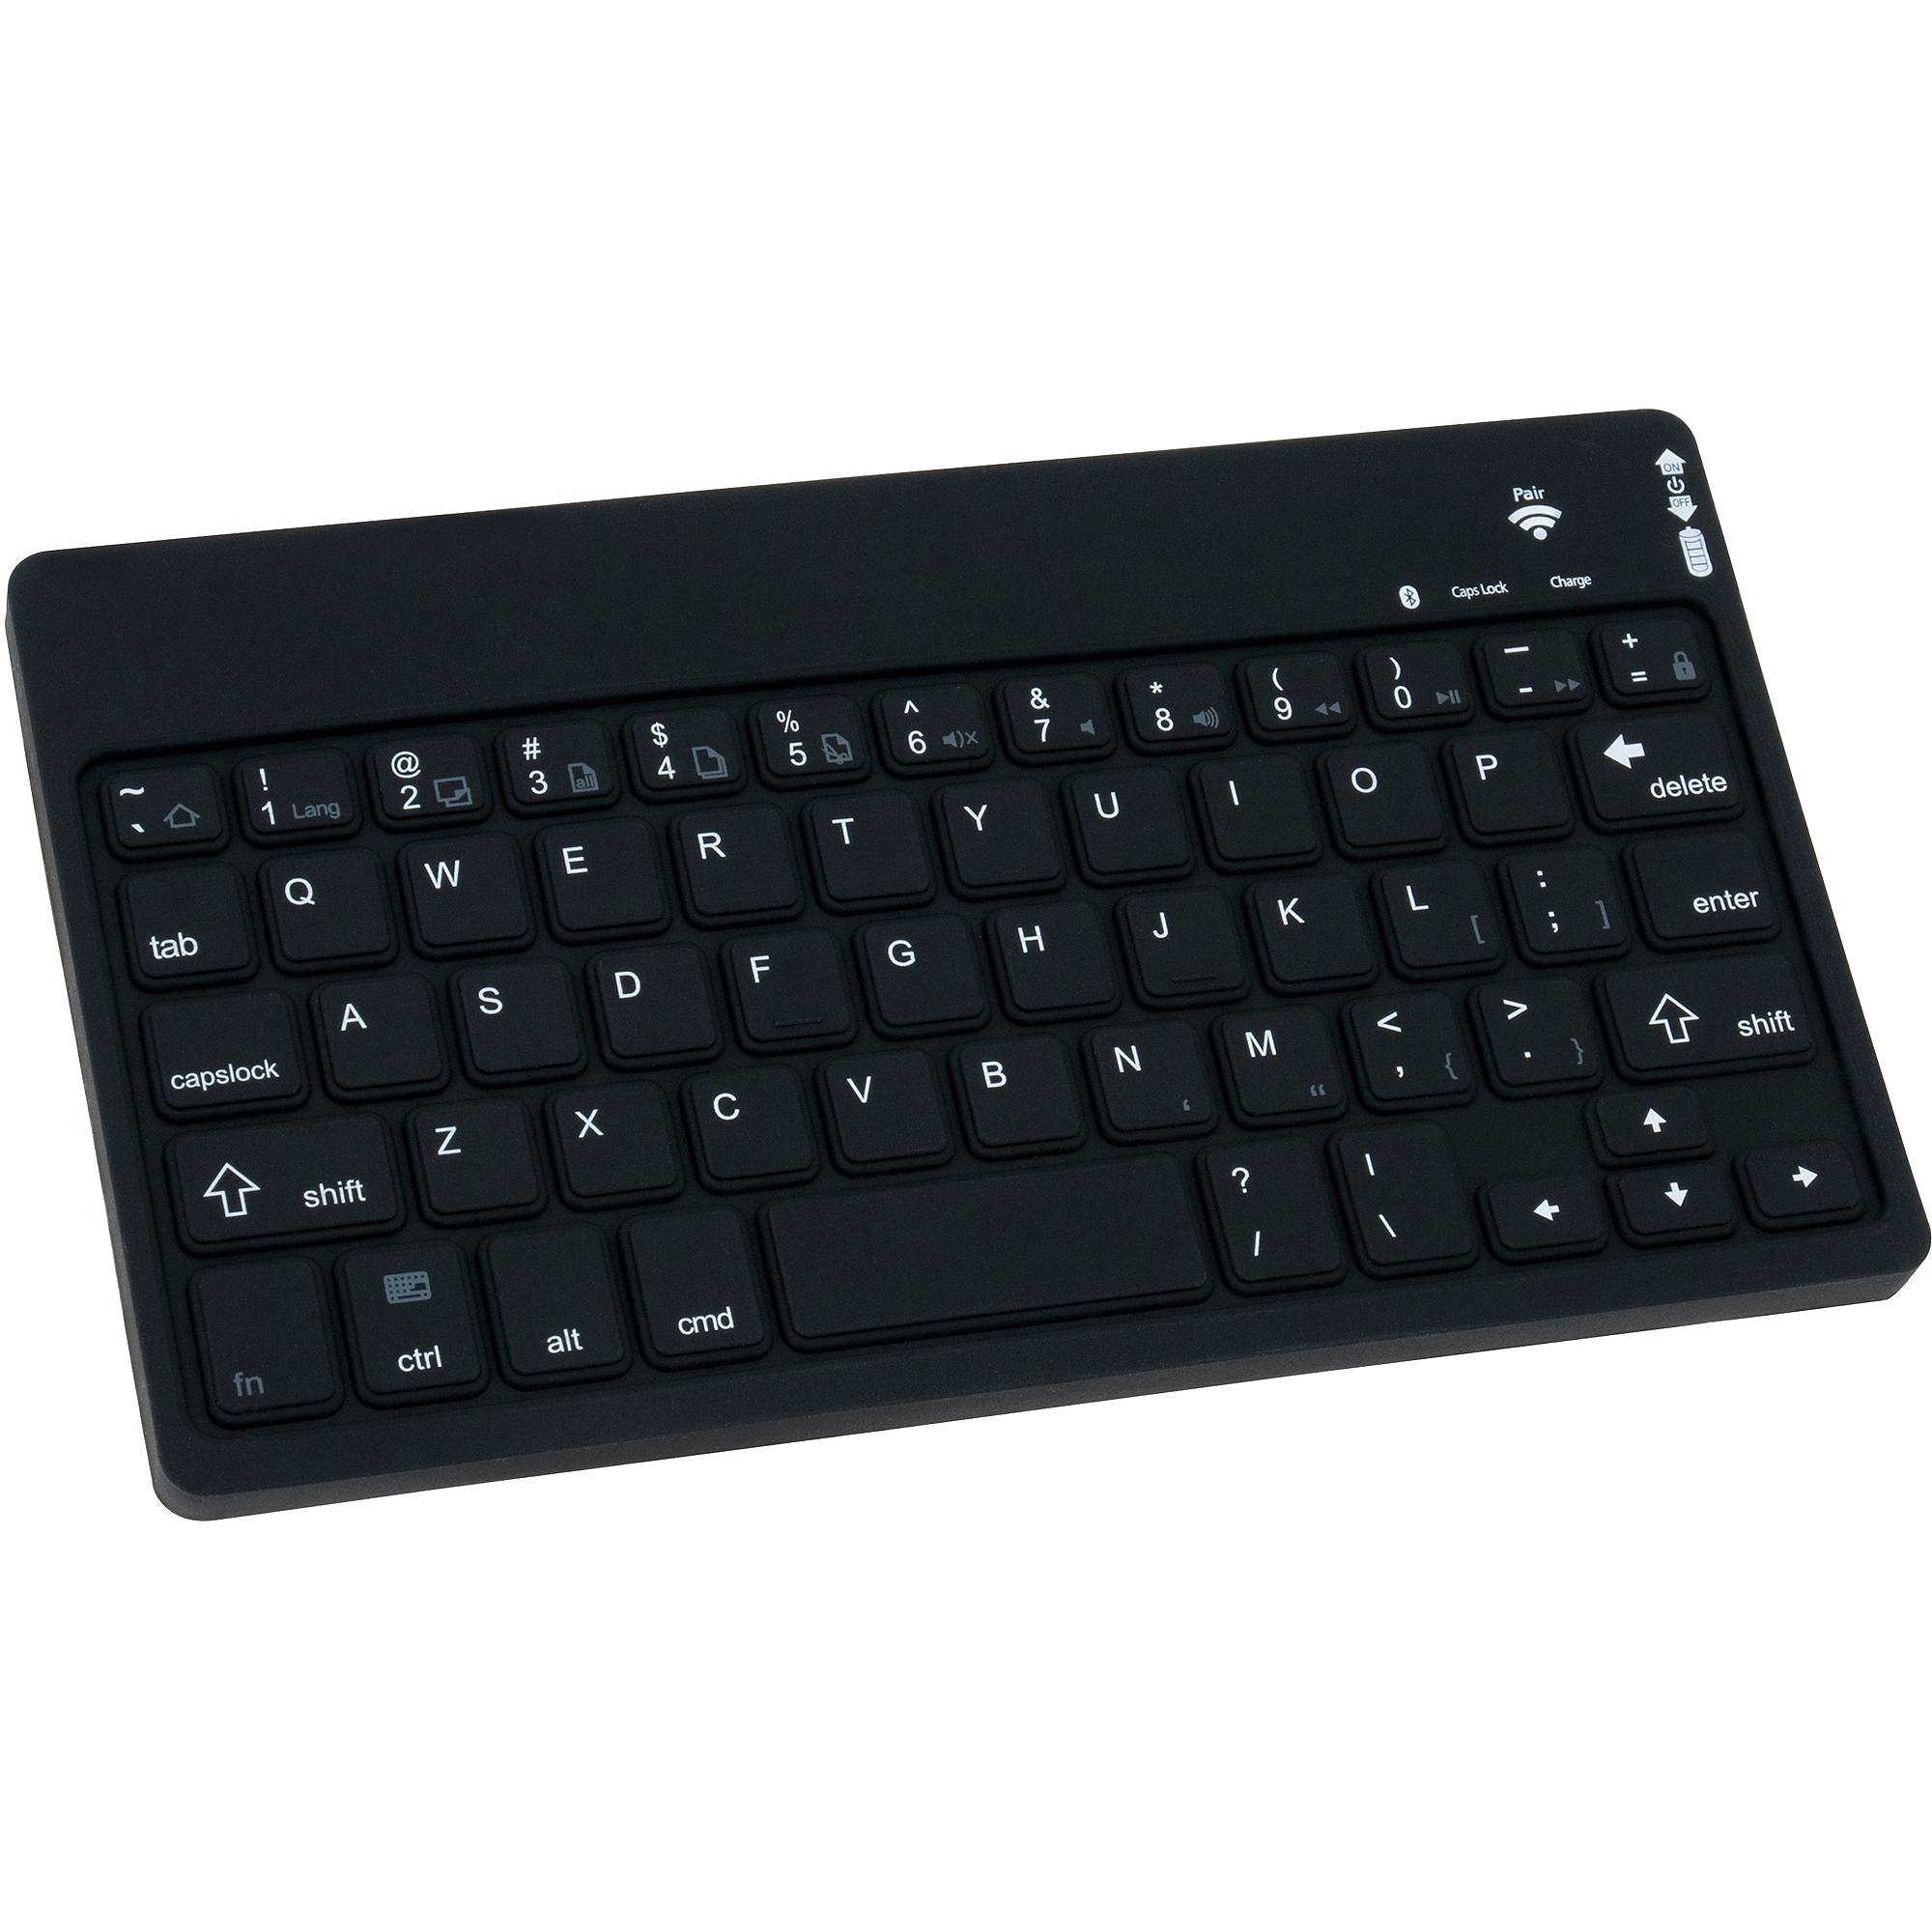 Onn Wireless Keyboard